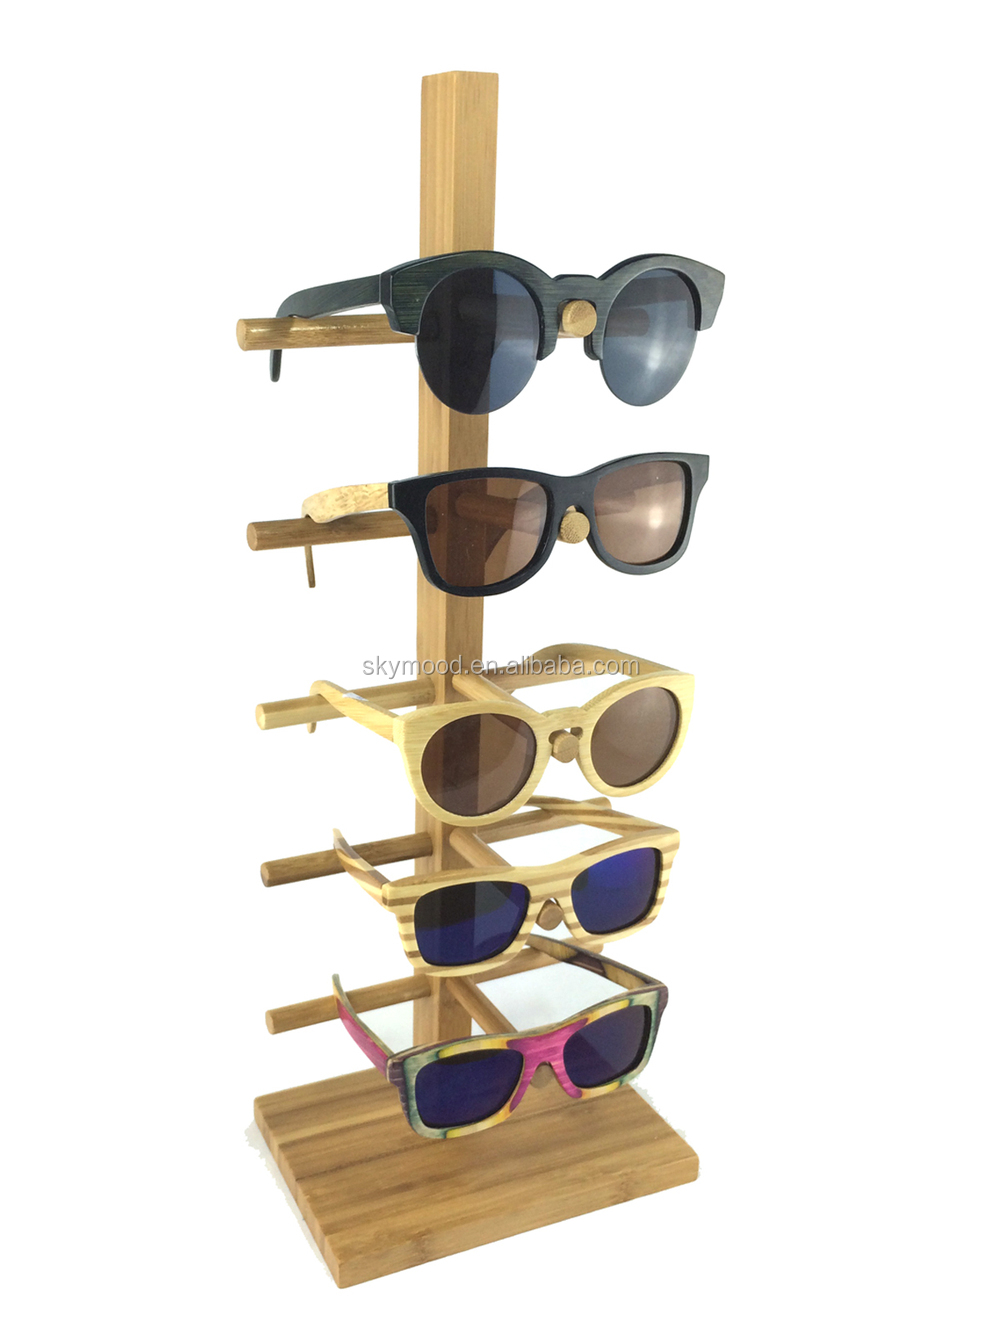 2017 New Eyewear Display Showcase Rack Fashion Sunglass ...